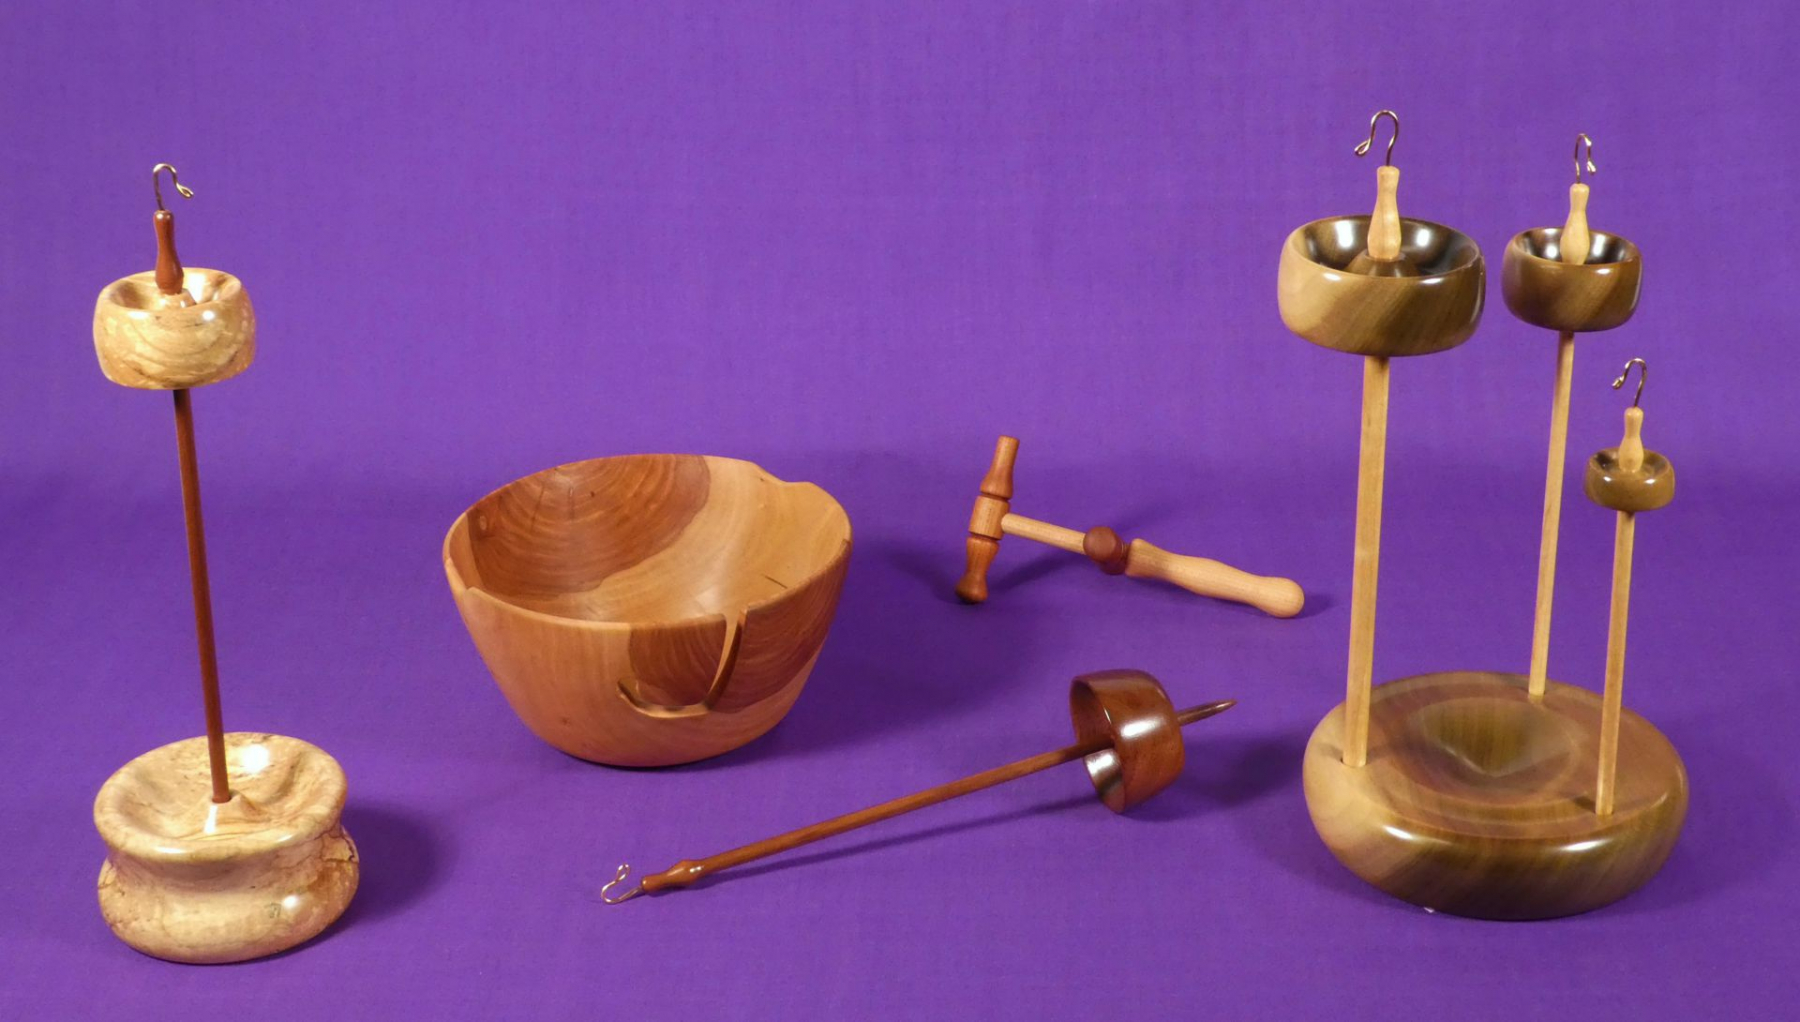 Top whorl drop spindle set with a matching base or display stand, woods ambrosia maple and black walnut. Apple hand turned yarn bowl, cherry mini size niddy-noddy. Branch size bottom, low, whorl spindle to be used supported or suspended in black walnut. Set of trunk, branch, and twig size top whorl drop spindles with matching holder, woods tulip poplar on curly ash. All made by Cynthia D. Haney in her Virginia, USA workshop.